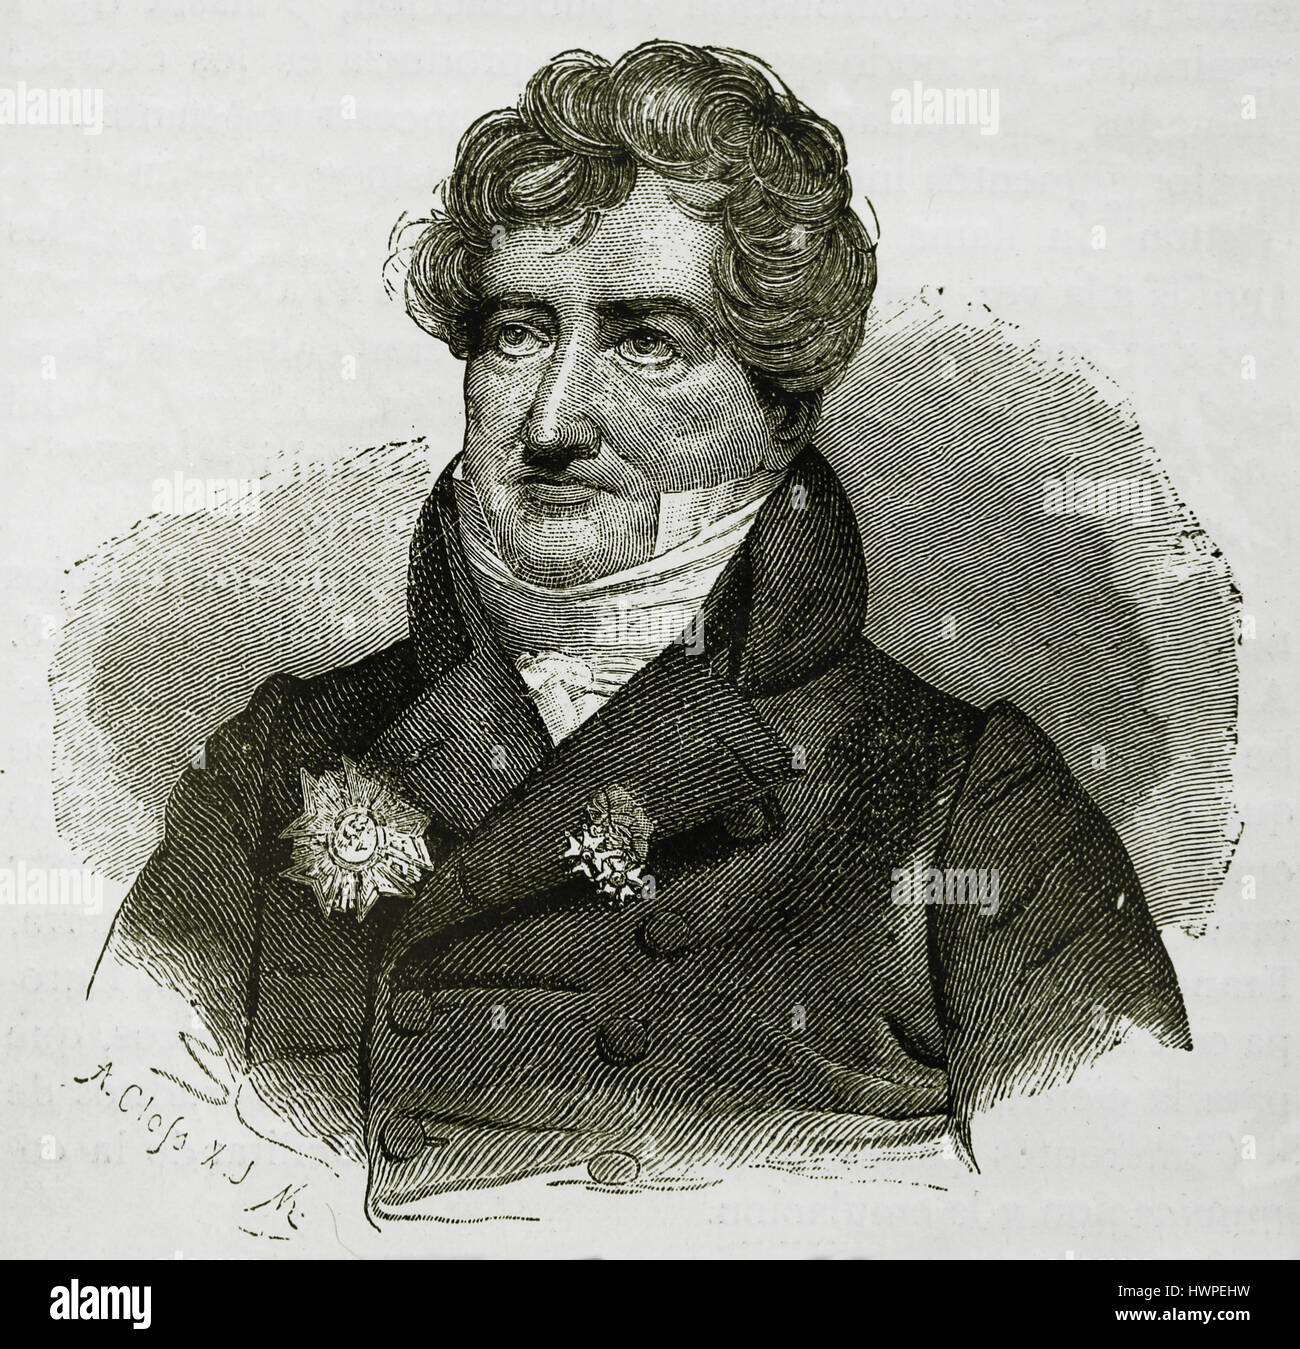 Georges Cuvier (1769-1832). French naturalist and zoologist. Portrait. Engraving, 1883. - Stock Image